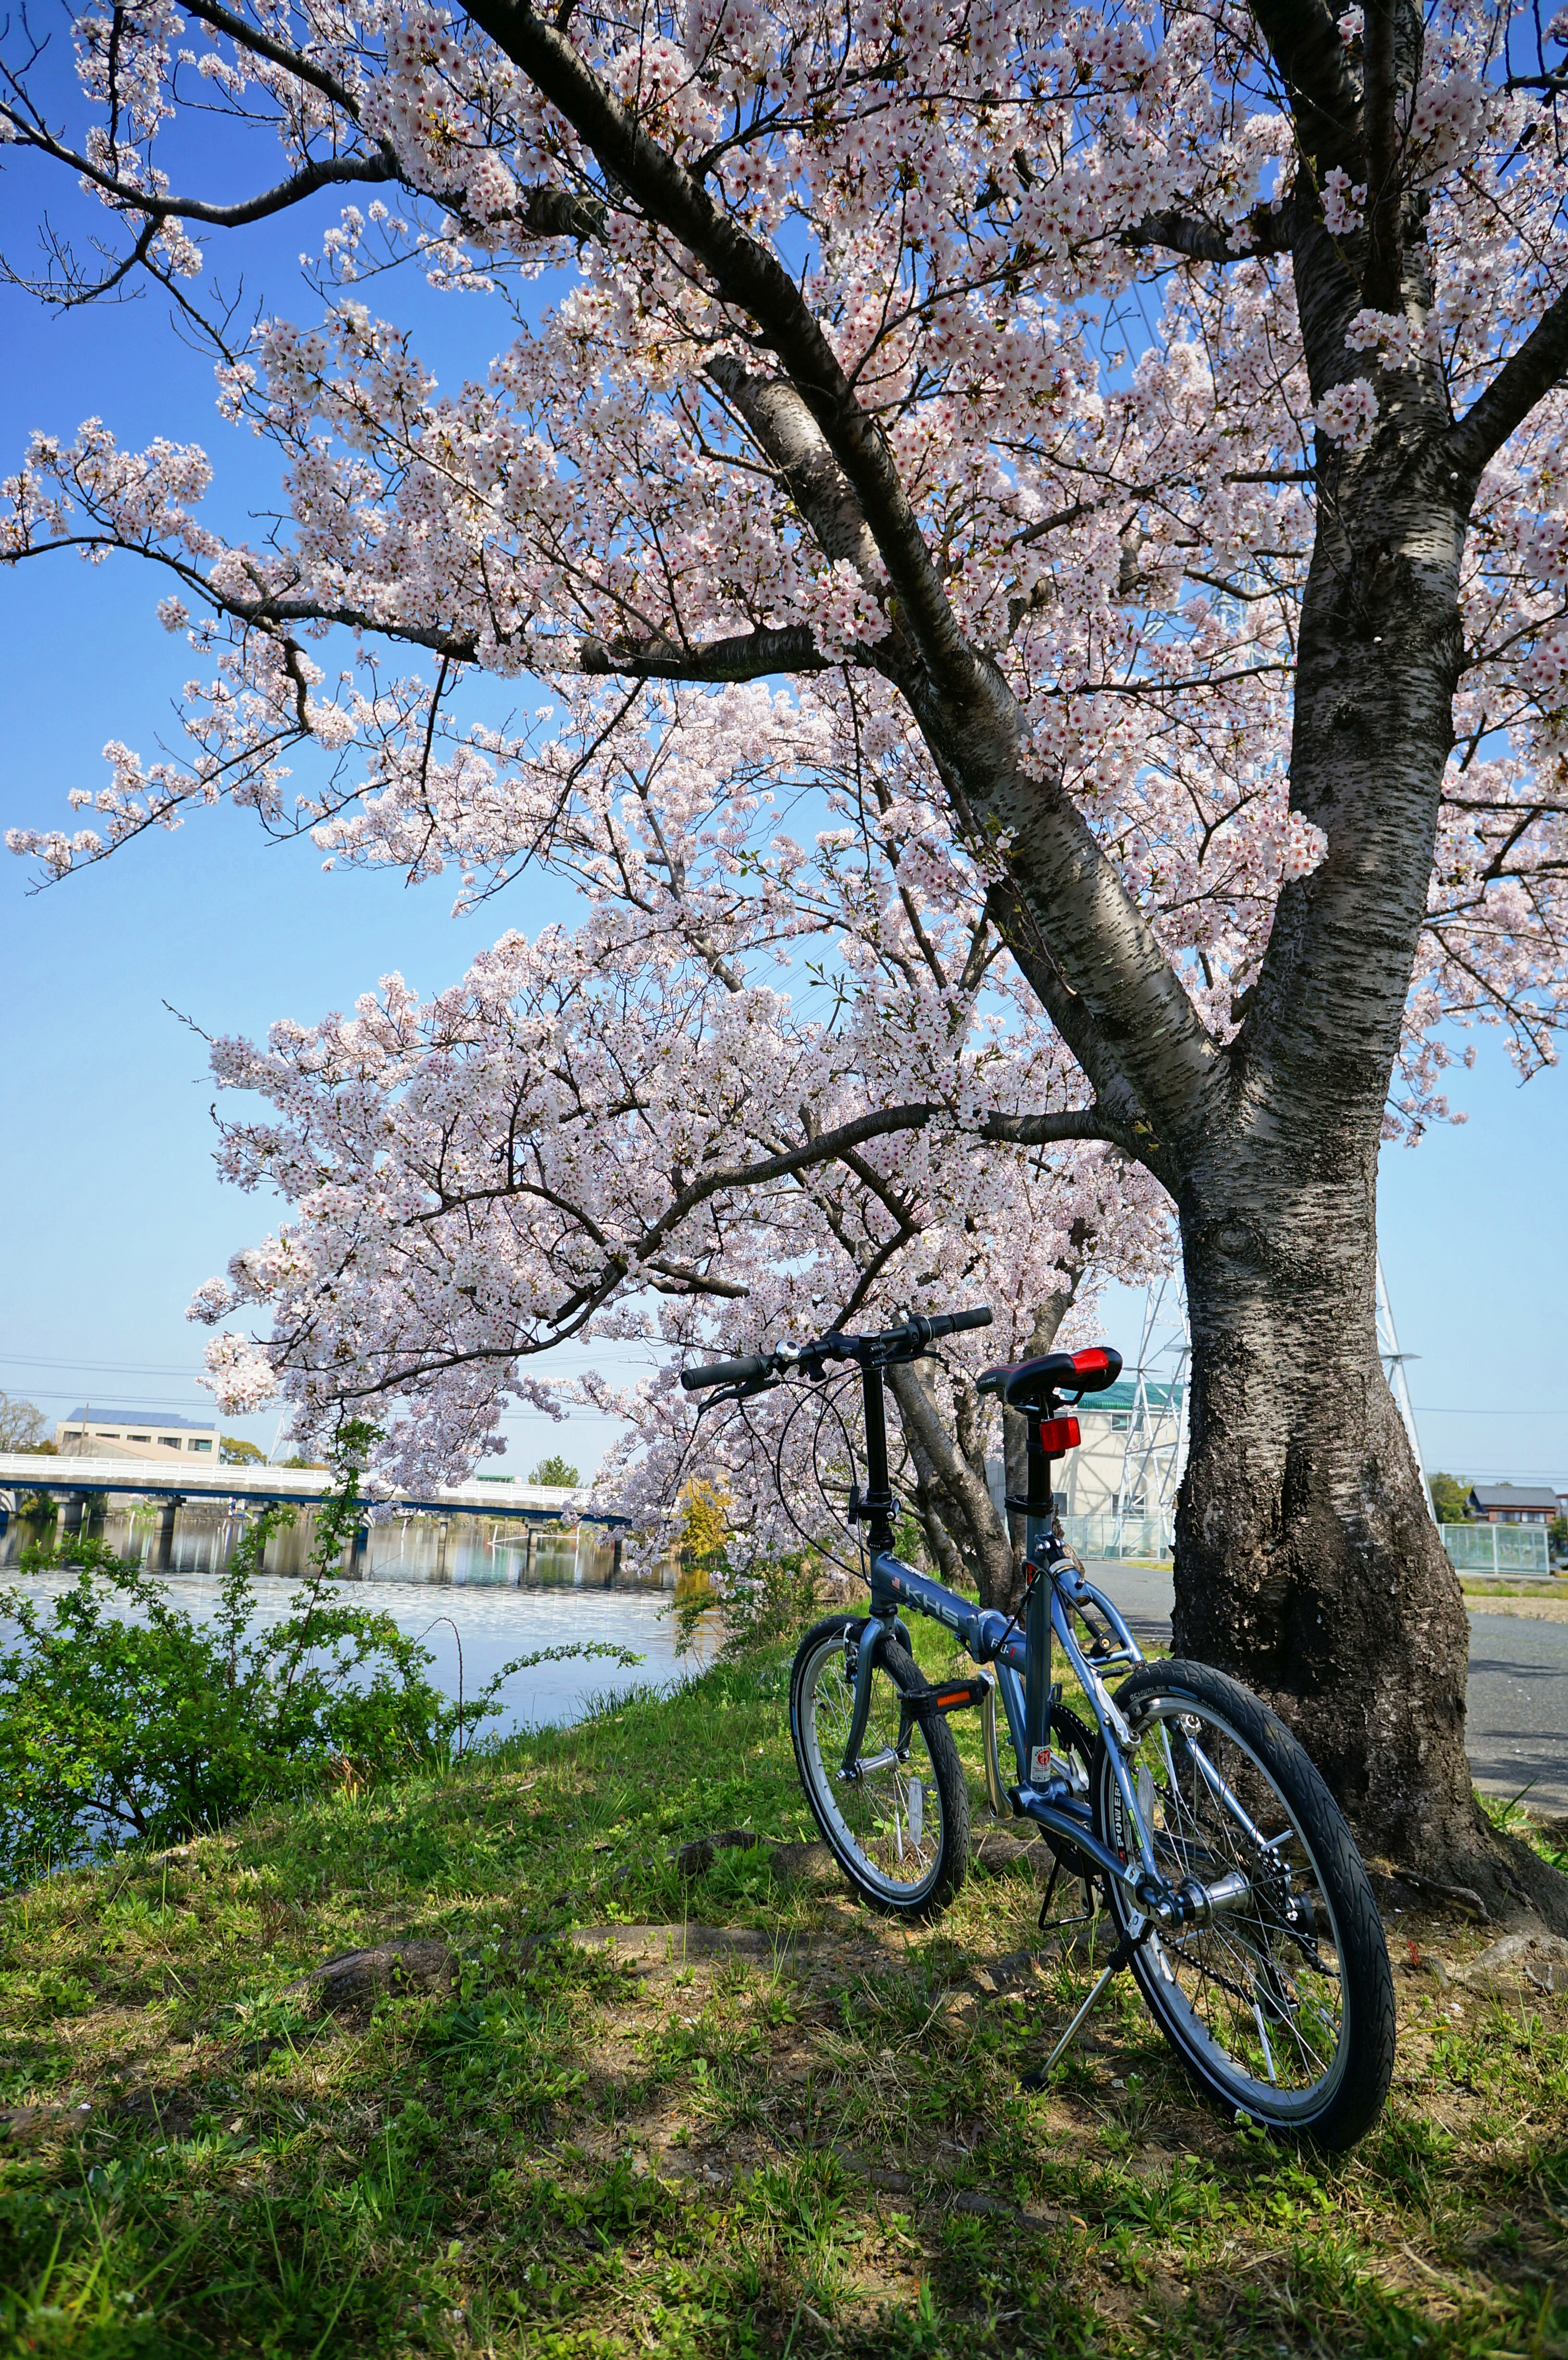 Saya River row of cherry blossom trees and bicycle